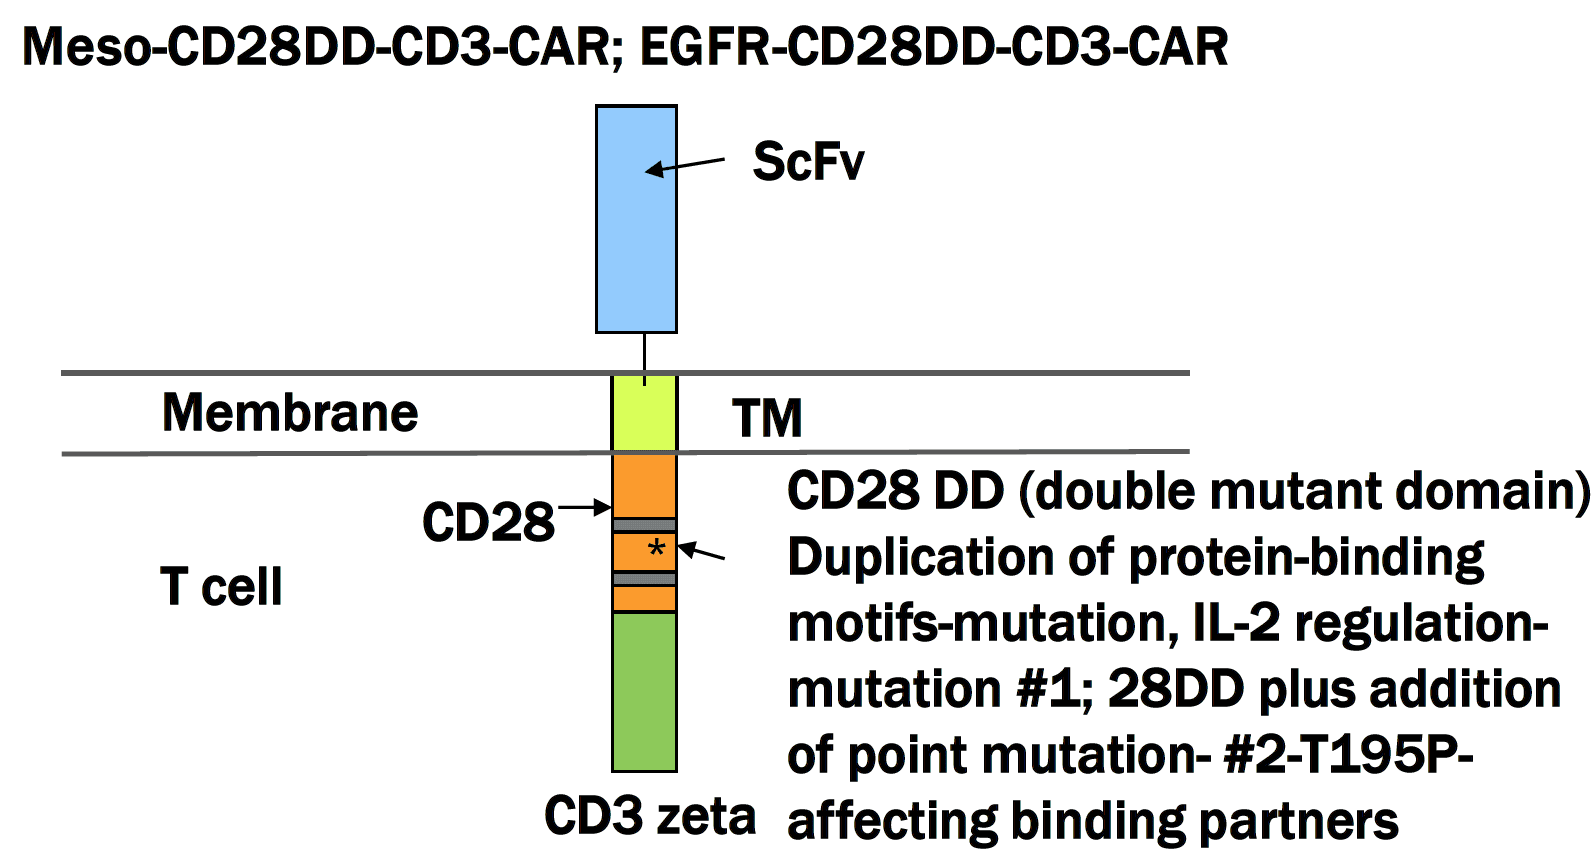 Mesothelin-CD28 double mutated domain CAR-T cell construct